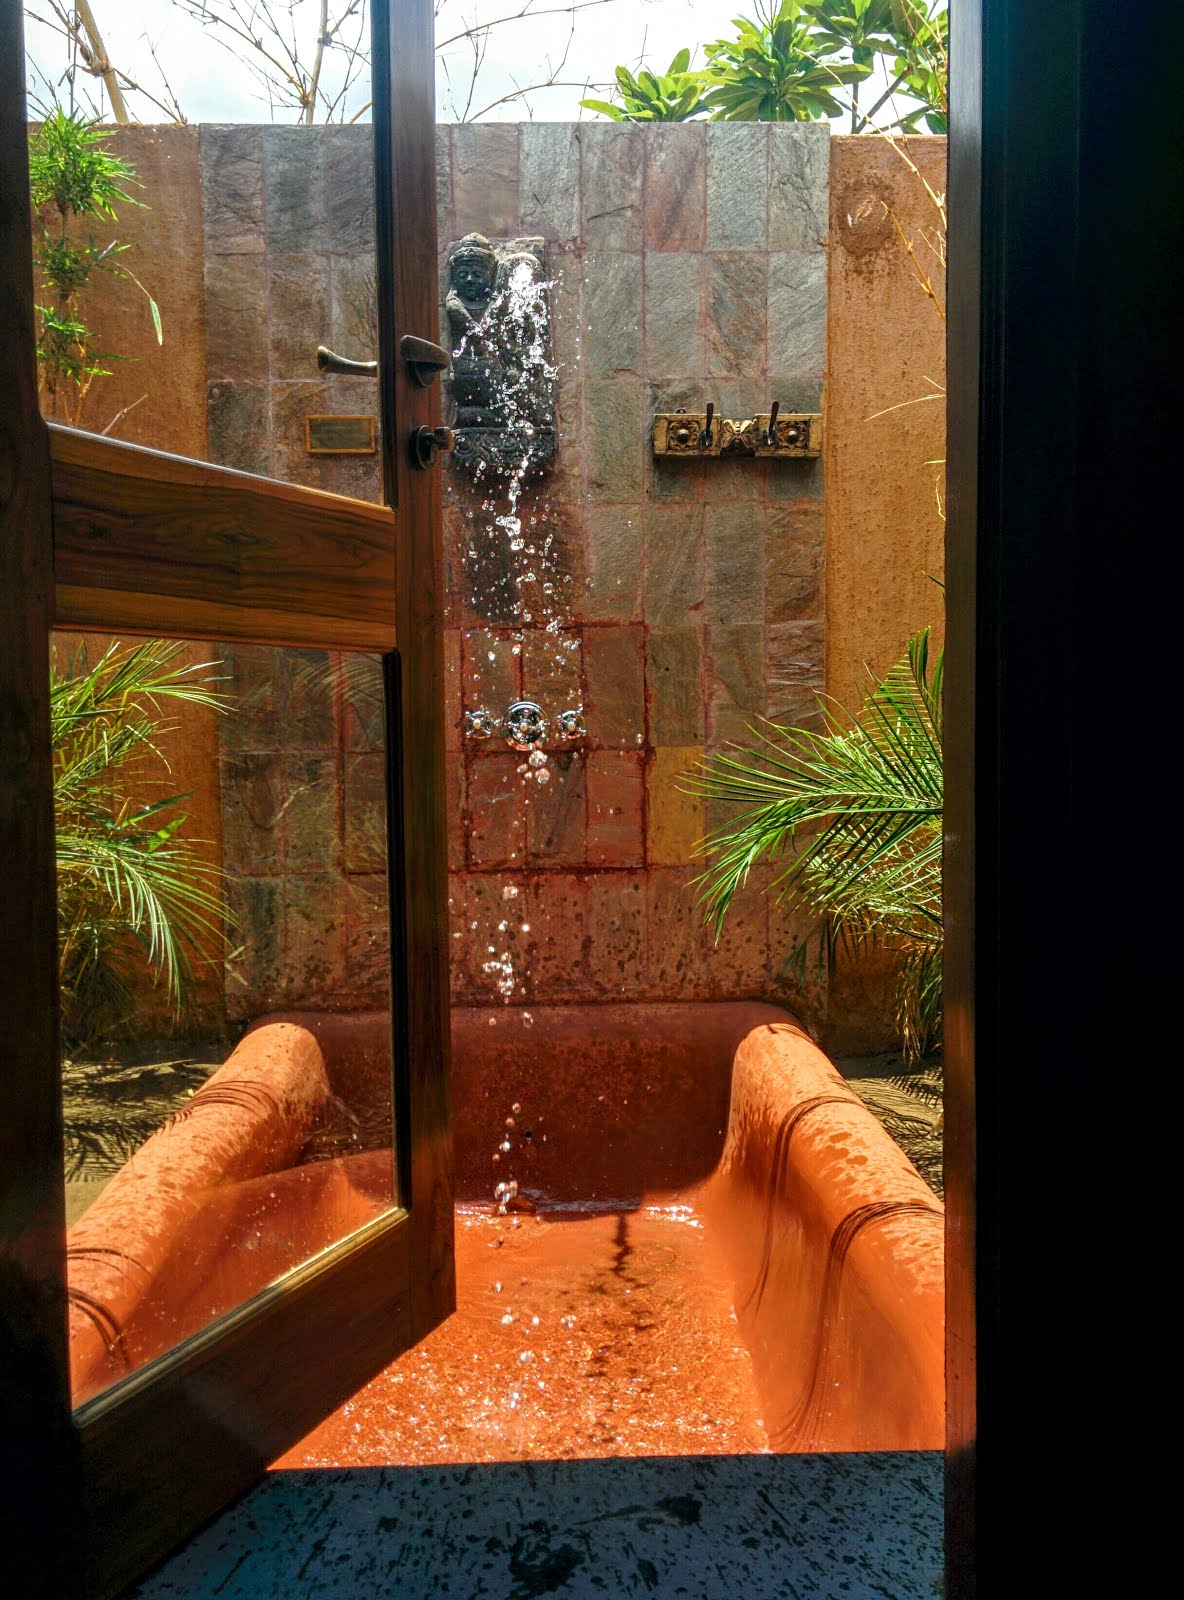 Traditional Clay Bath Tub and Gargoyle Shower - Bamboo Forest Safari Lodge